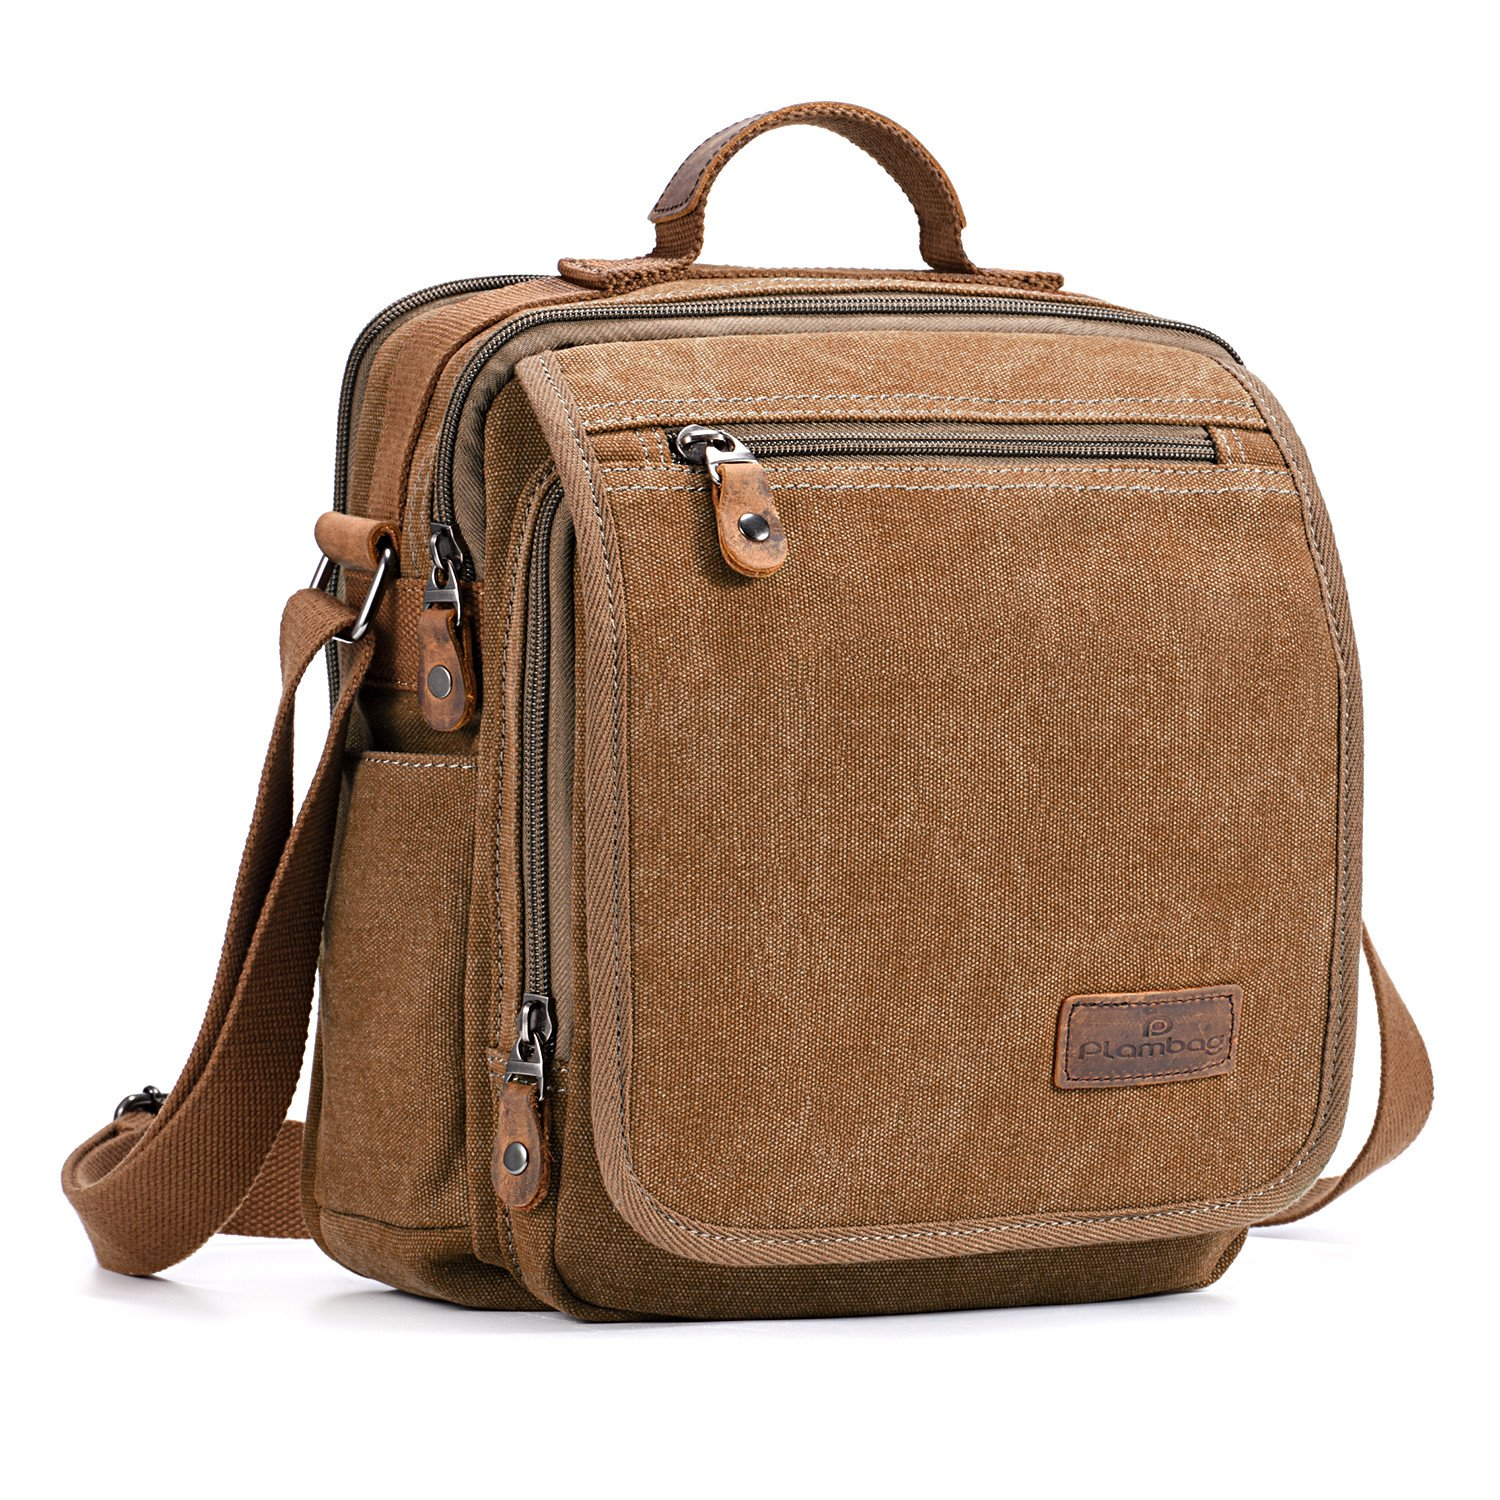 Amazon Best Sellers: Best Messenger Bags